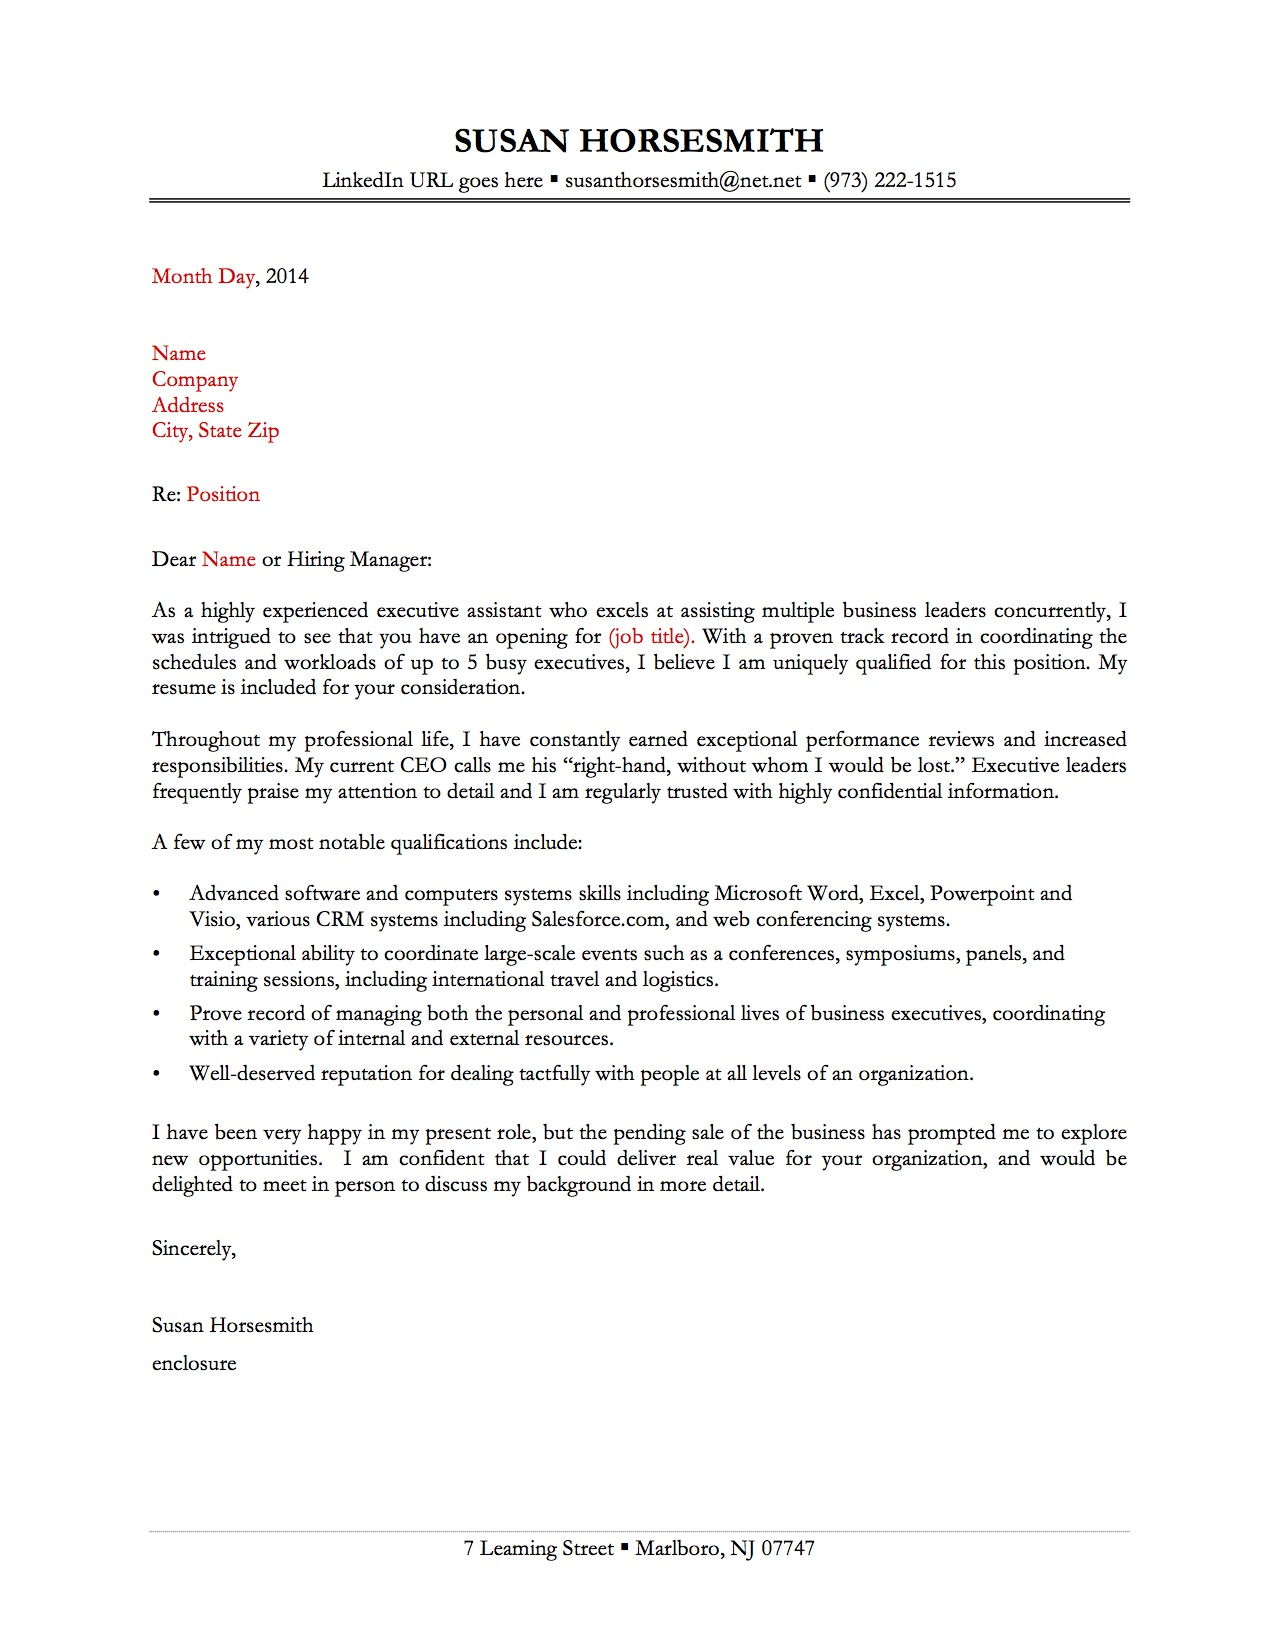 Sample Cover Letter 1  How To Start A Cover Letter For A Job